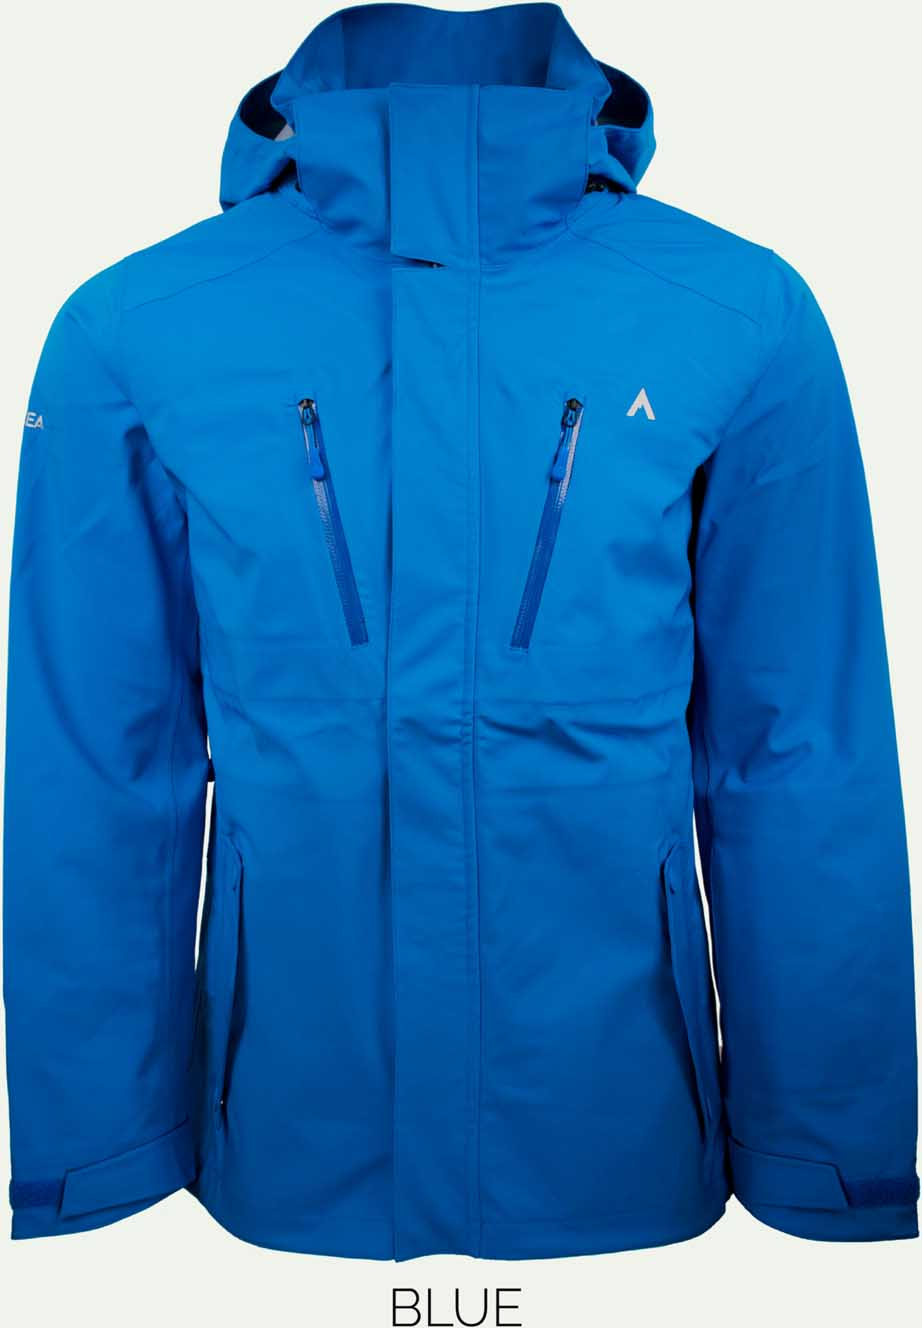 image terracea-station-jacket-blue-copy-jpg